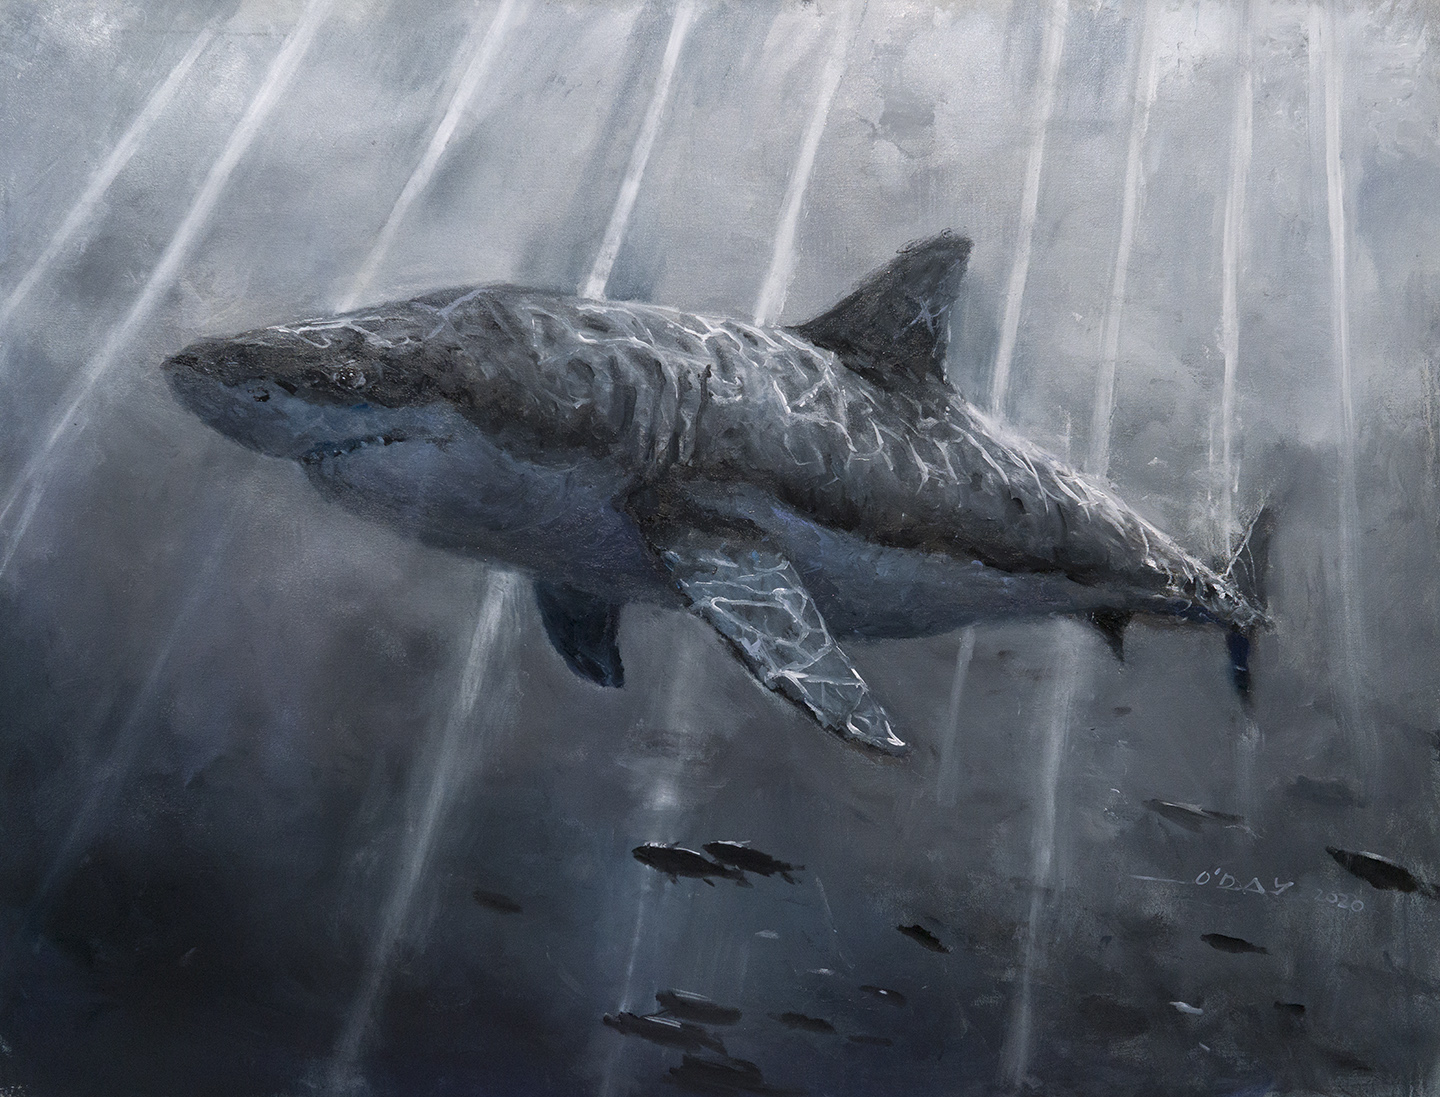 """Great White, oil on canvas, 48x60"""", 2020 SOLD"""